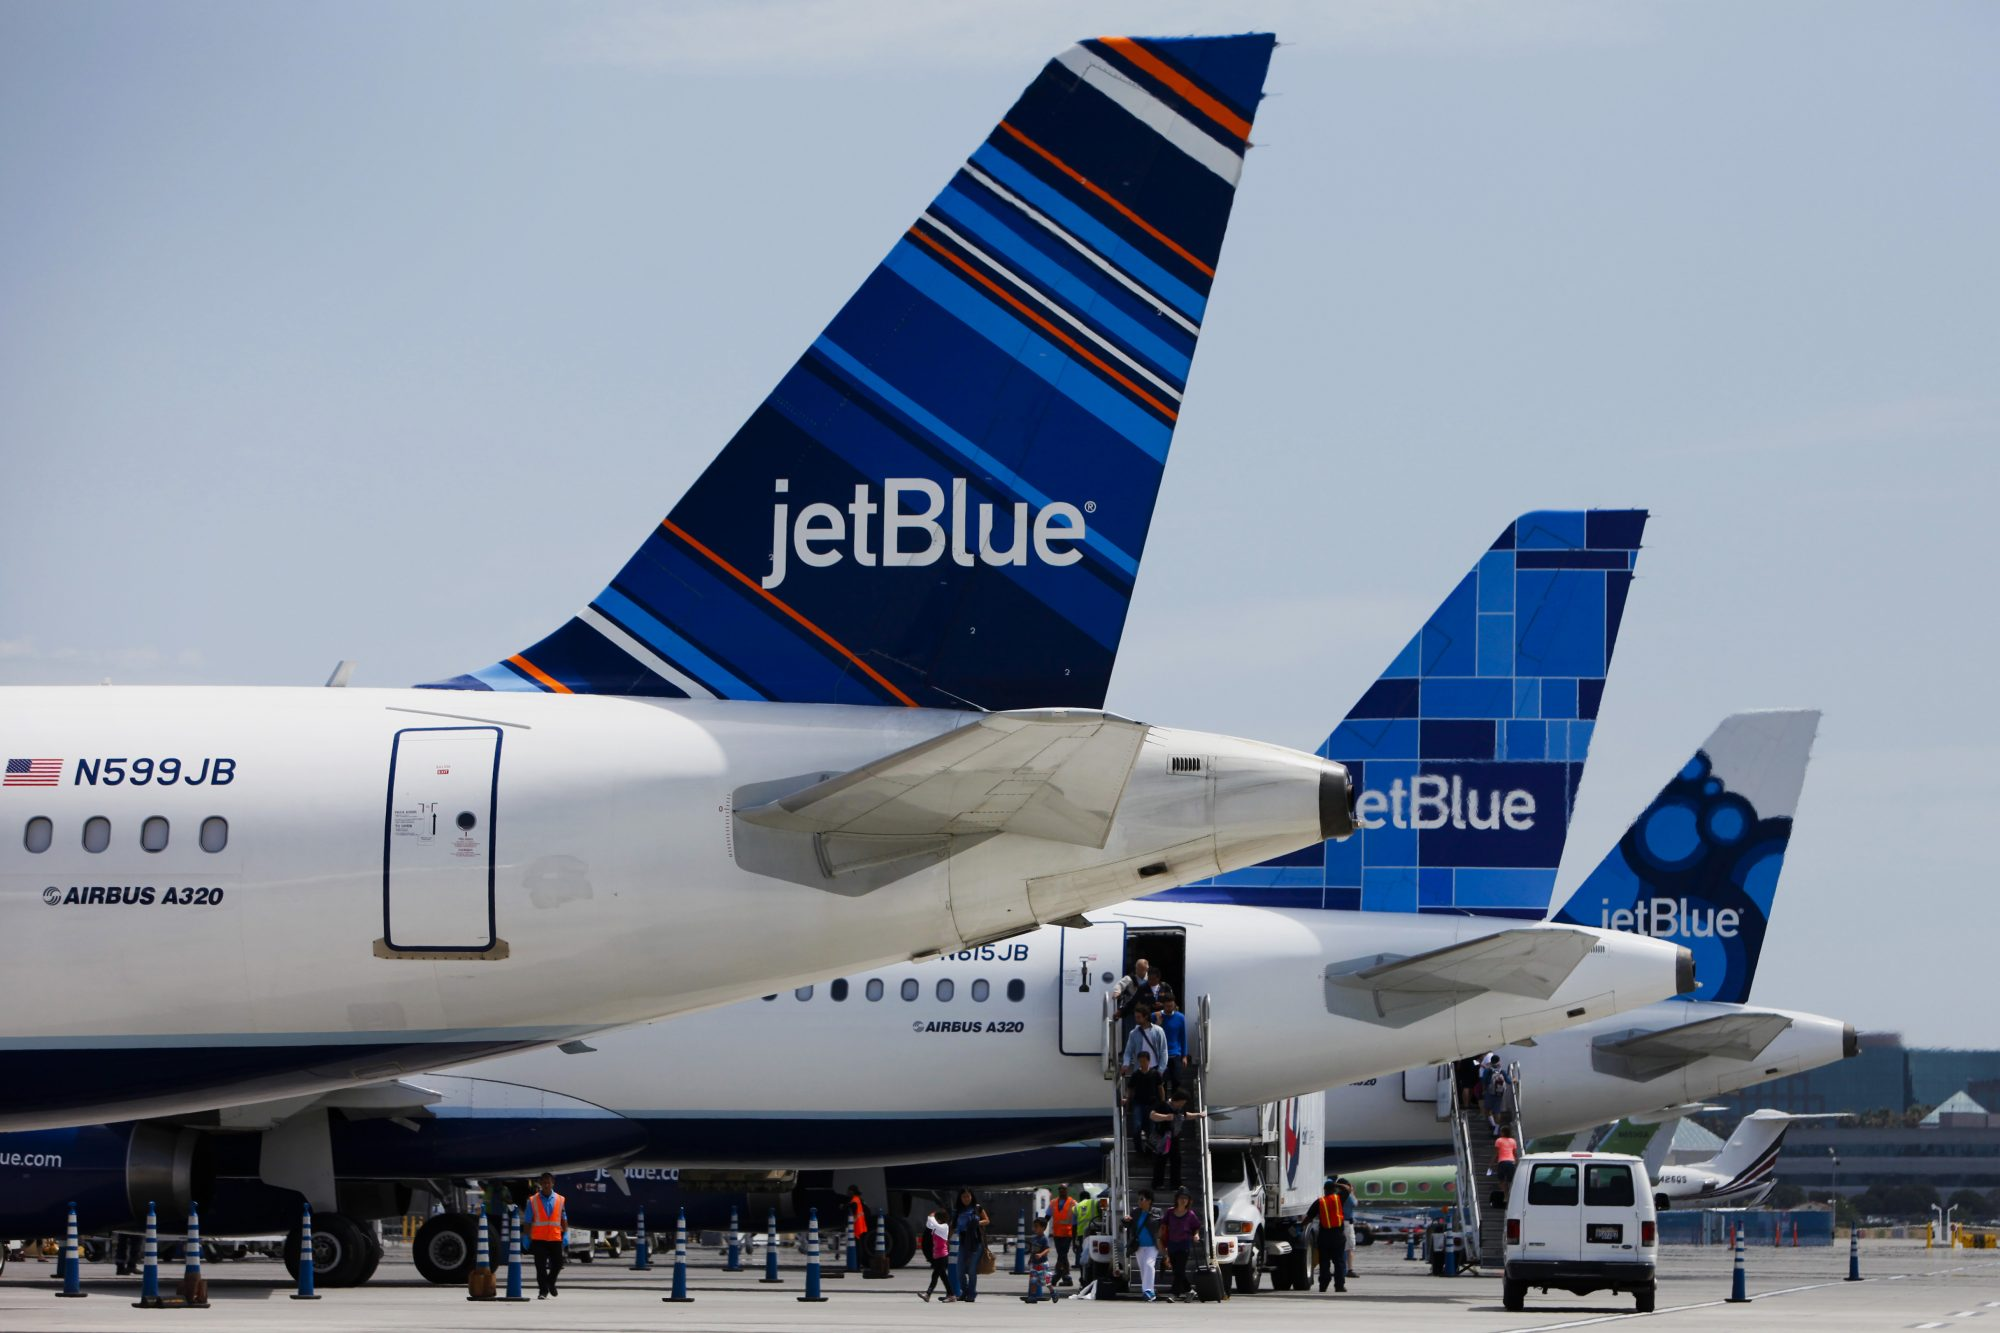 JetBlue Terminal At Long Beach Airport Ahead Of Earnings Figures